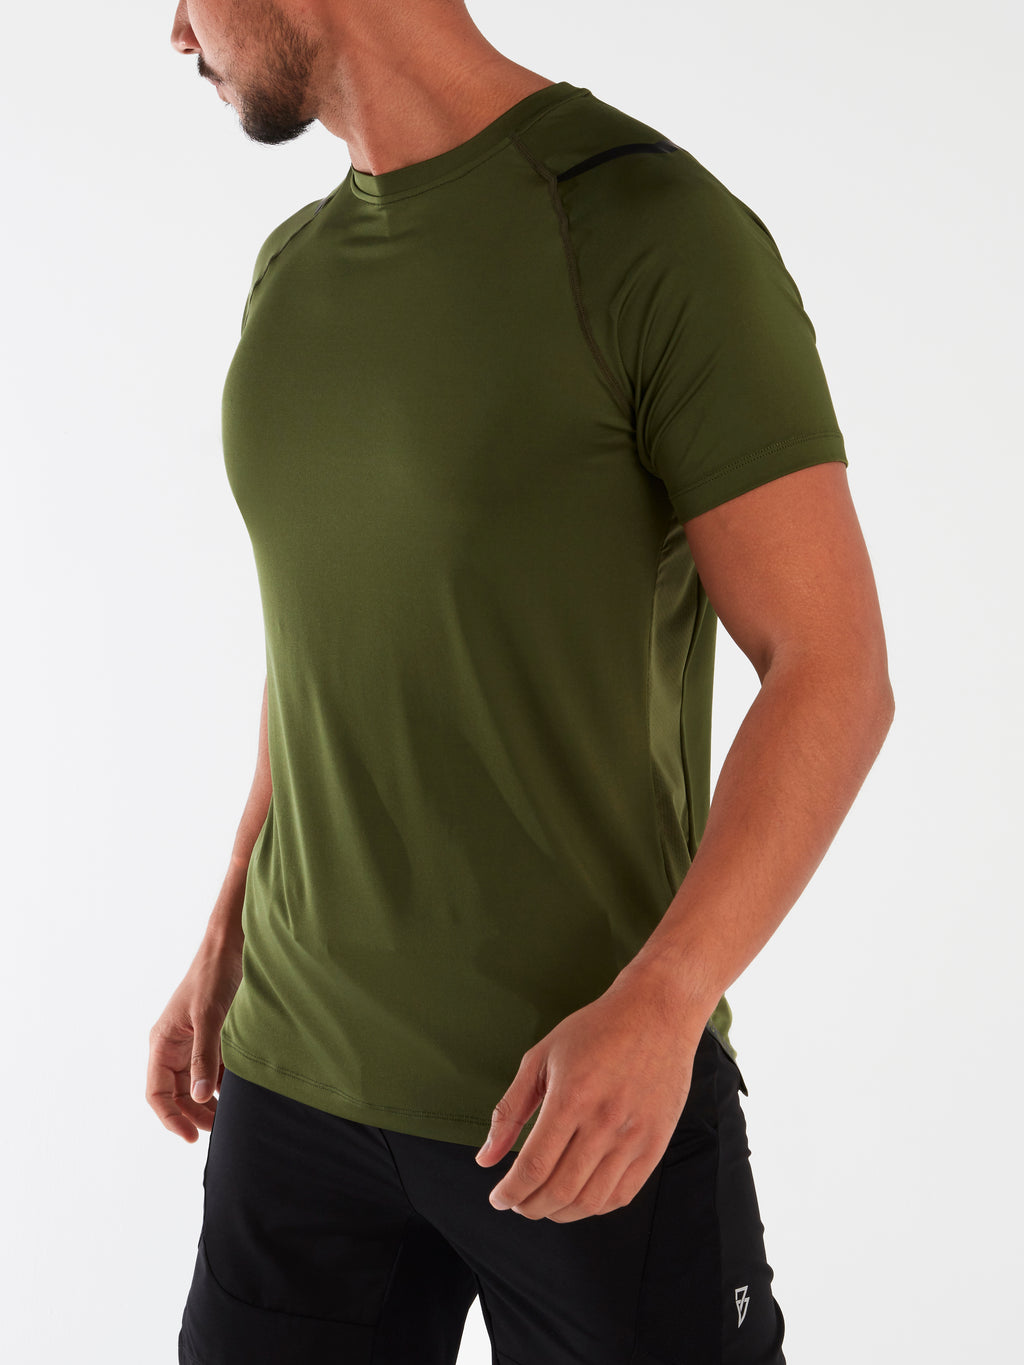 Eco Tech Tee - Chive